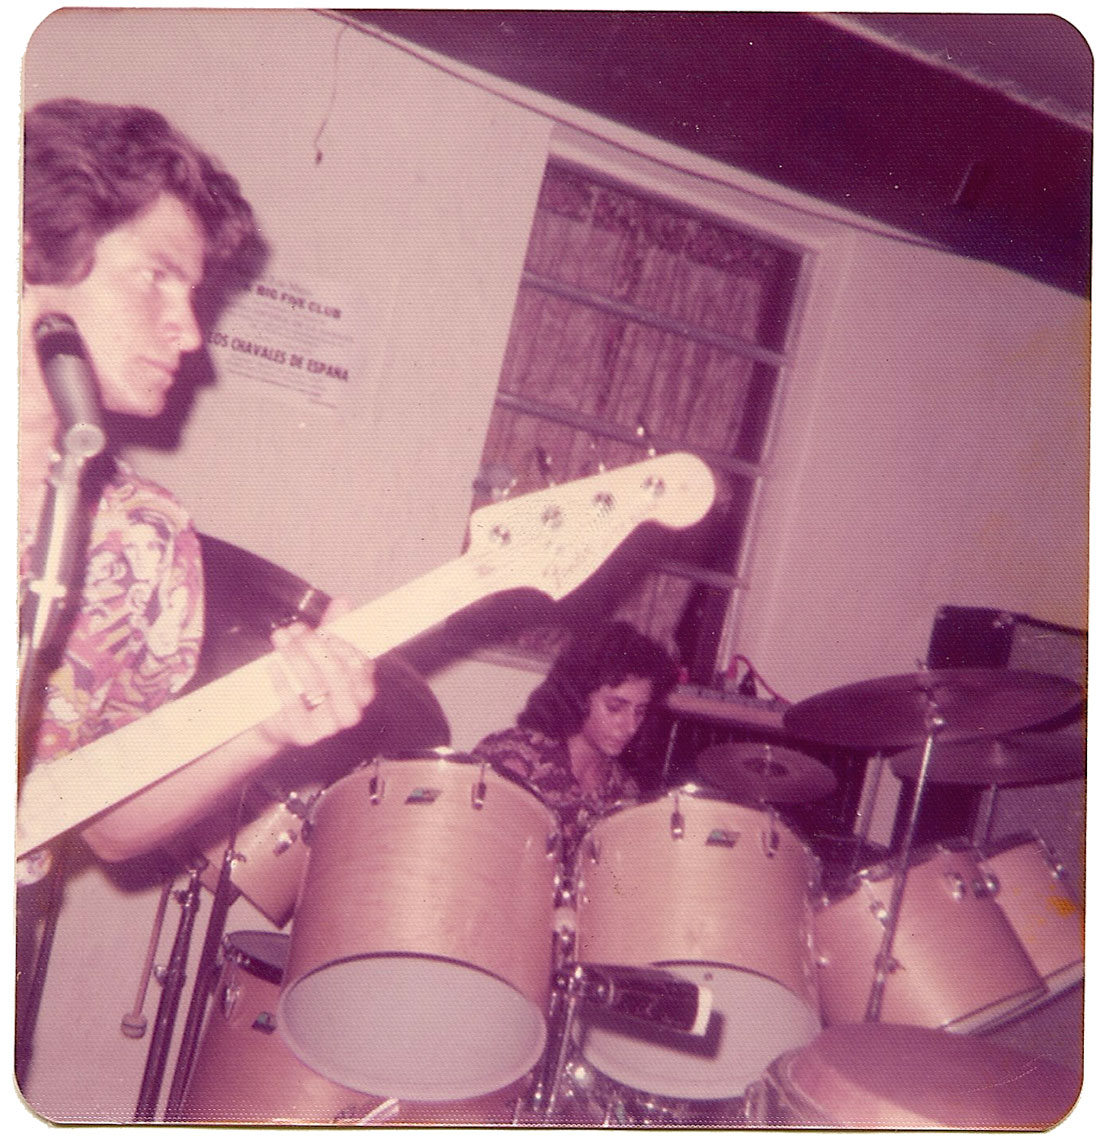 Alex Cobos and Carlos Segura at The Big-5 Club on March 30, 1975